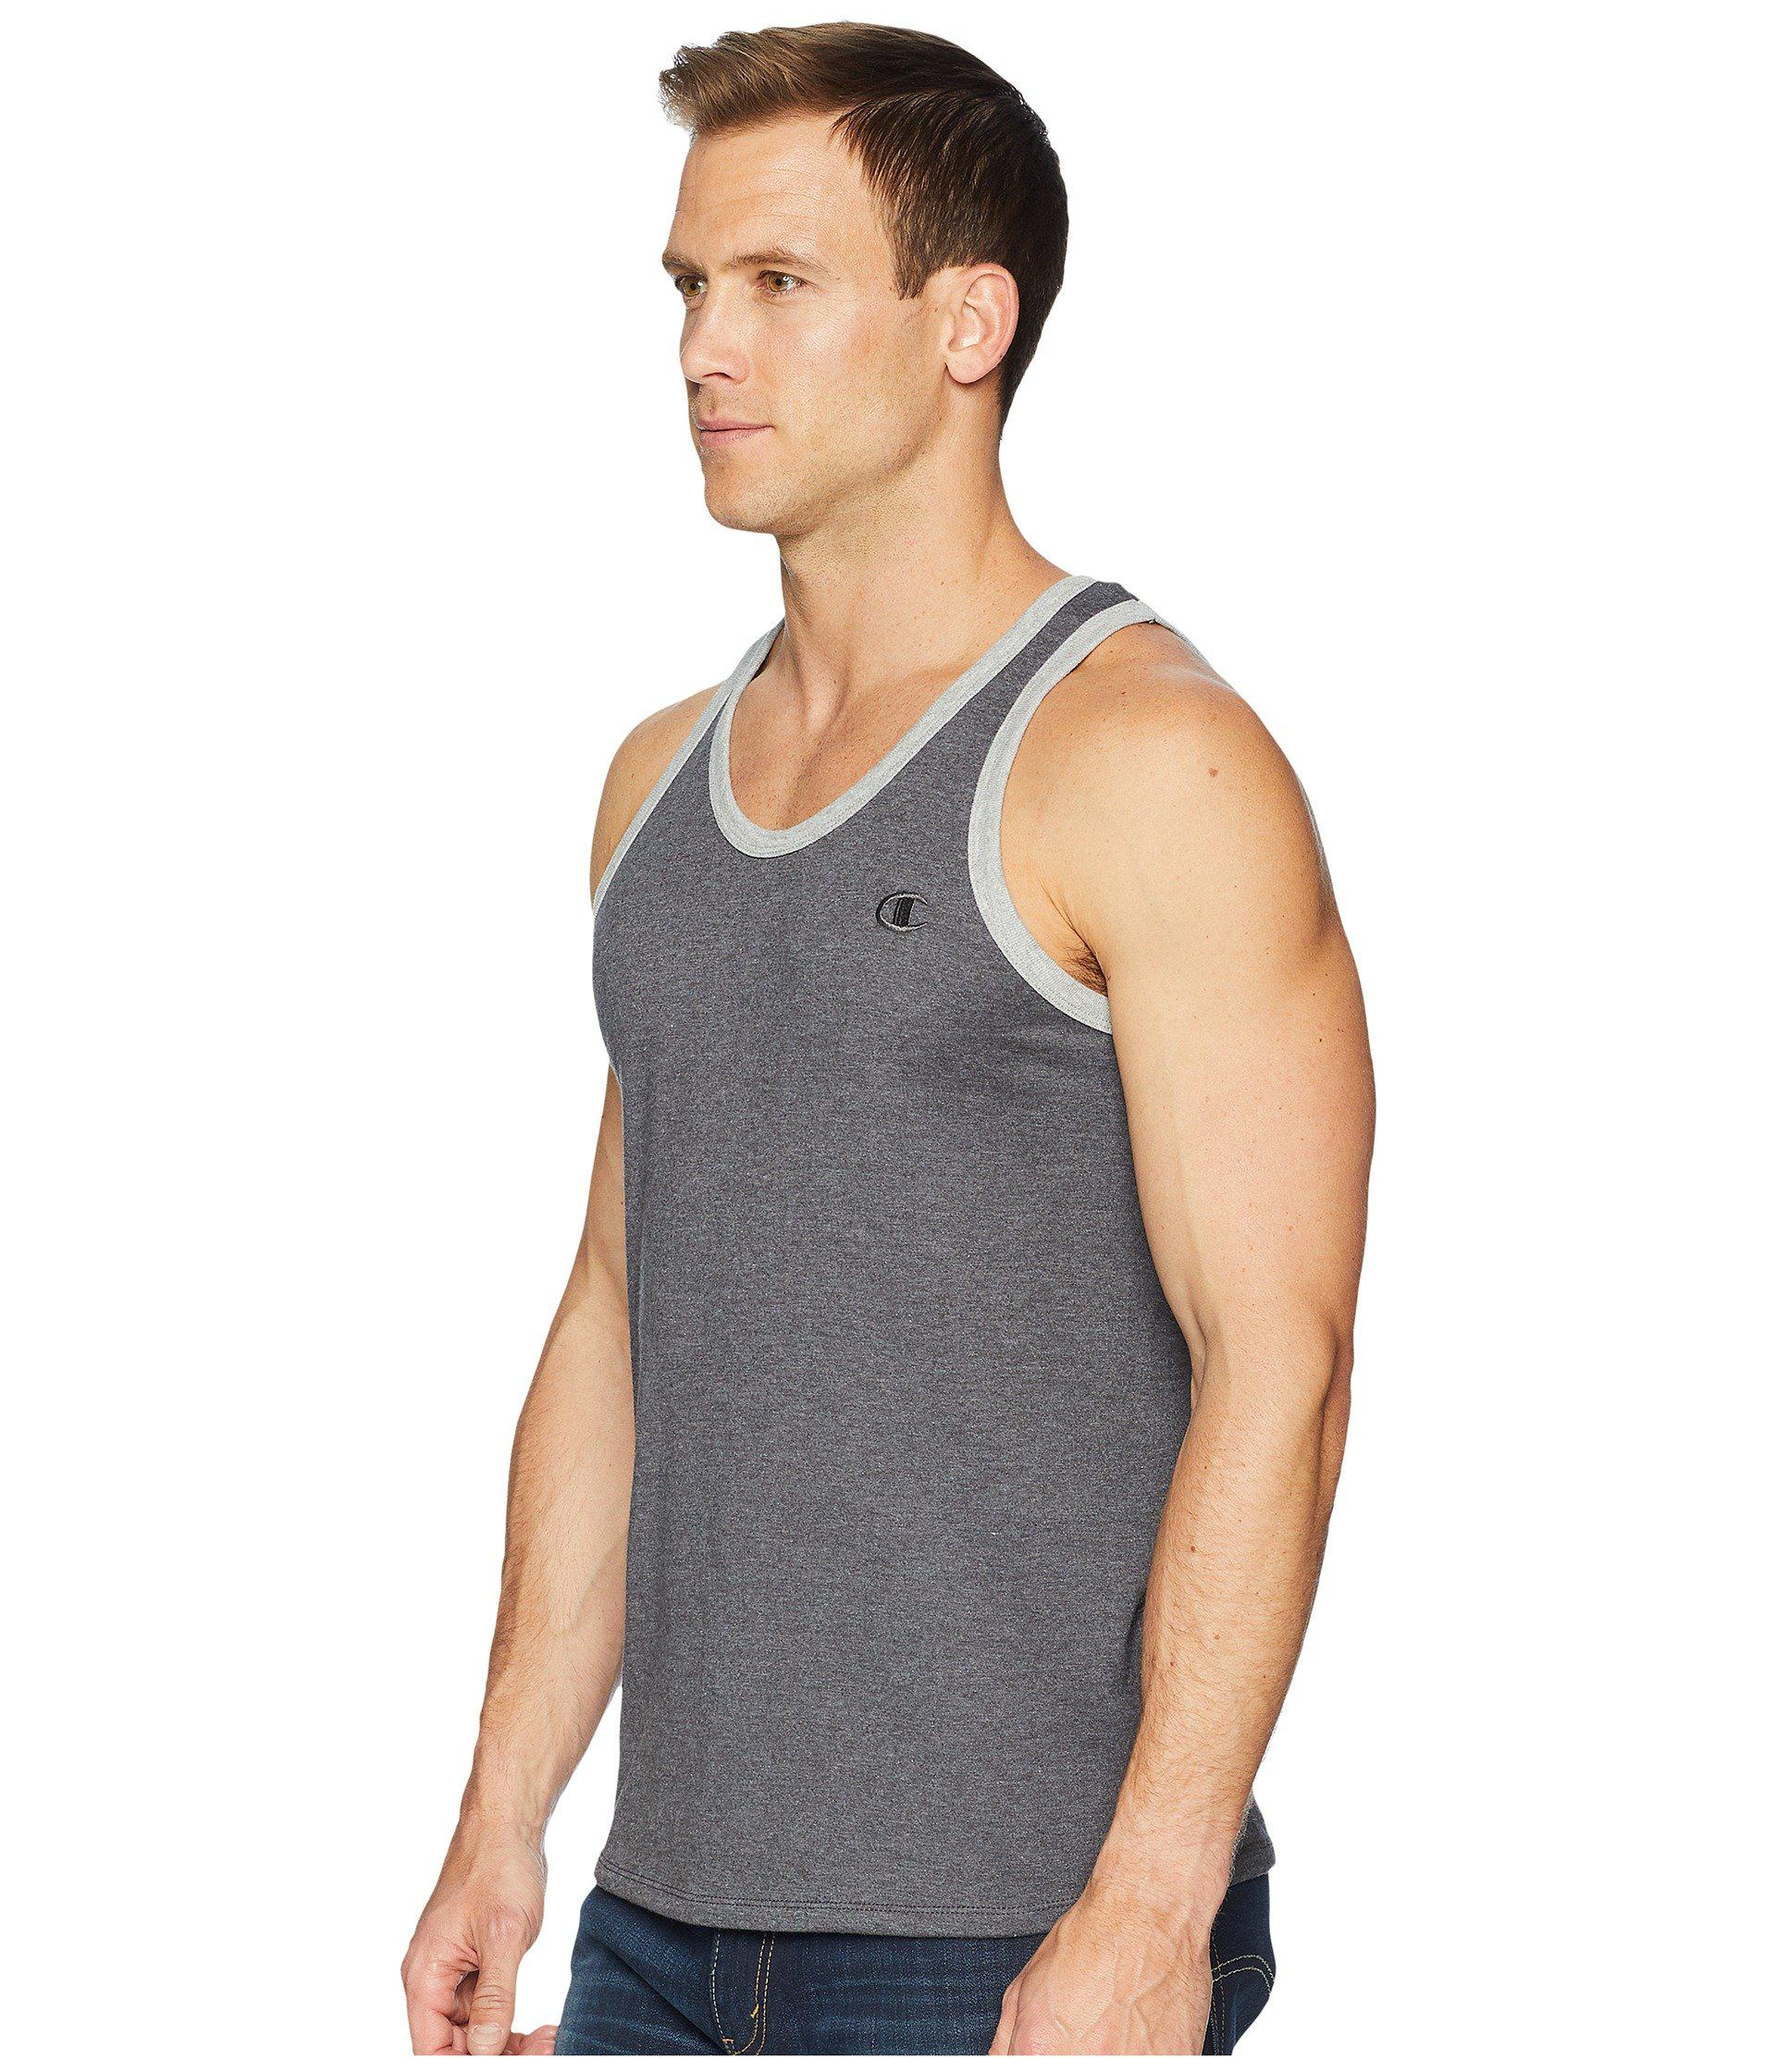 4256f3e5dfc192 Lyst - Champion Classic Jersey Ringer Tank Top (granite Heather oxford Grey  Heather) Men s Sleeveless in Gray for Men